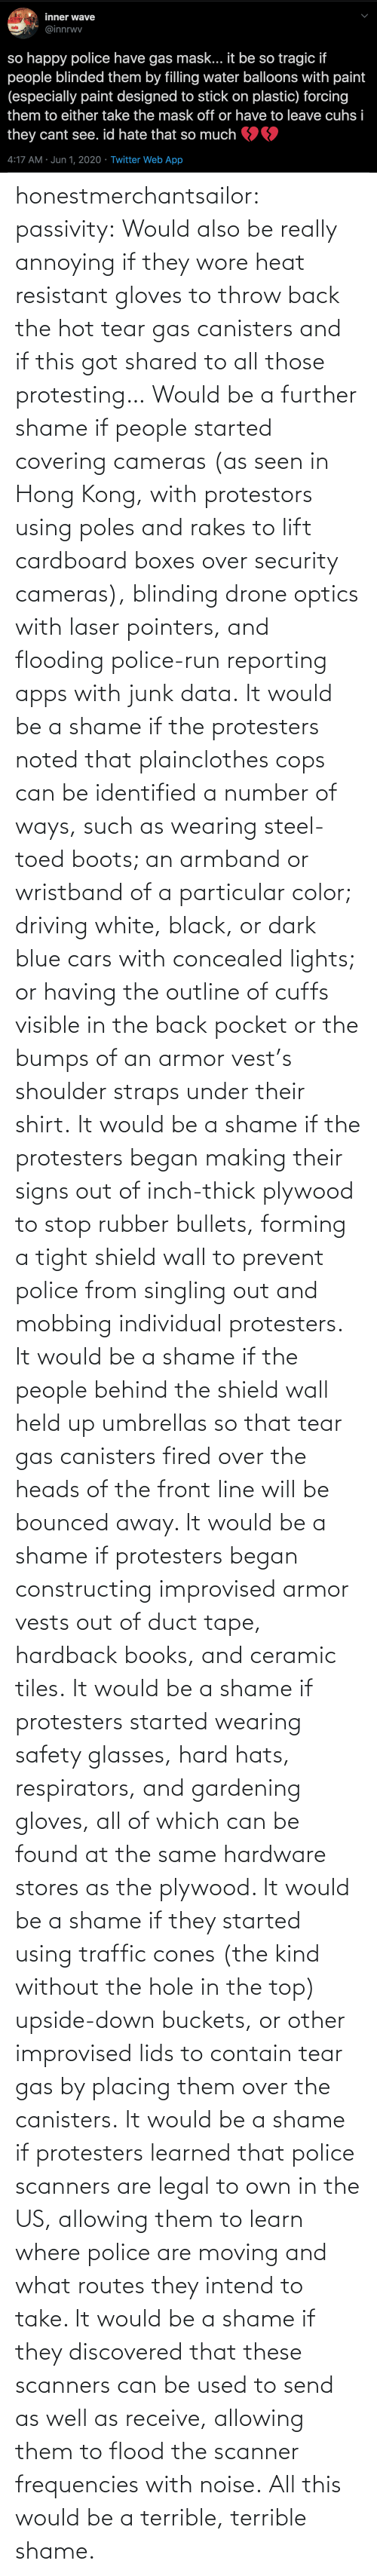 tight: honestmerchantsailor: passivity: Would also be really annoying if they wore heat resistant gloves to throw back the hot tear gas canisters and if this got shared to all those protesting… Would be a further shame if people started covering cameras (as seen in Hong Kong, with protestors using poles and rakes to lift cardboard boxes over security cameras), blinding drone optics with laser pointers, and flooding police-run reporting apps with junk data. It would be a shame if the protesters noted that plainclothes cops can be identified a number of ways, such as wearing steel-toed boots; an armband or wristband of a particular color; driving white, black, or dark blue cars with concealed lights; or having the outline of cuffs visible in the back pocket or the bumps of an armor vest's shoulder straps under their shirt. It would be a shame if the protesters began making their signs out of inch-thick plywood to stop rubber bullets, forming a tight shield wall to prevent police from singling out and mobbing individual protesters. It would be a shame if the people behind the shield wall held up umbrellas so that tear gas canisters fired over the heads of the front line will be bounced away. It would be a shame if protesters began constructing improvised armor vests out of duct tape, hardback books, and ceramic tiles. It would be a shame if protesters started wearing safety glasses, hard hats, respirators, and gardening gloves, all of which can be found at the same hardware stores as the plywood. It would be a shame if they started using traffic cones (the kind without the hole in the top) upside-down buckets, or other improvised lids to contain tear gas by placing them over the canisters. It would be a shame if protesters learned that police scanners are legal to own in the US, allowing them to learn where police are moving and what routes they intend to take. It would be a shame if they discovered that these scanners can be used to send as well as receive, allowing them to flood the scanner frequencies with noise. All this would be a terrible, terrible shame.